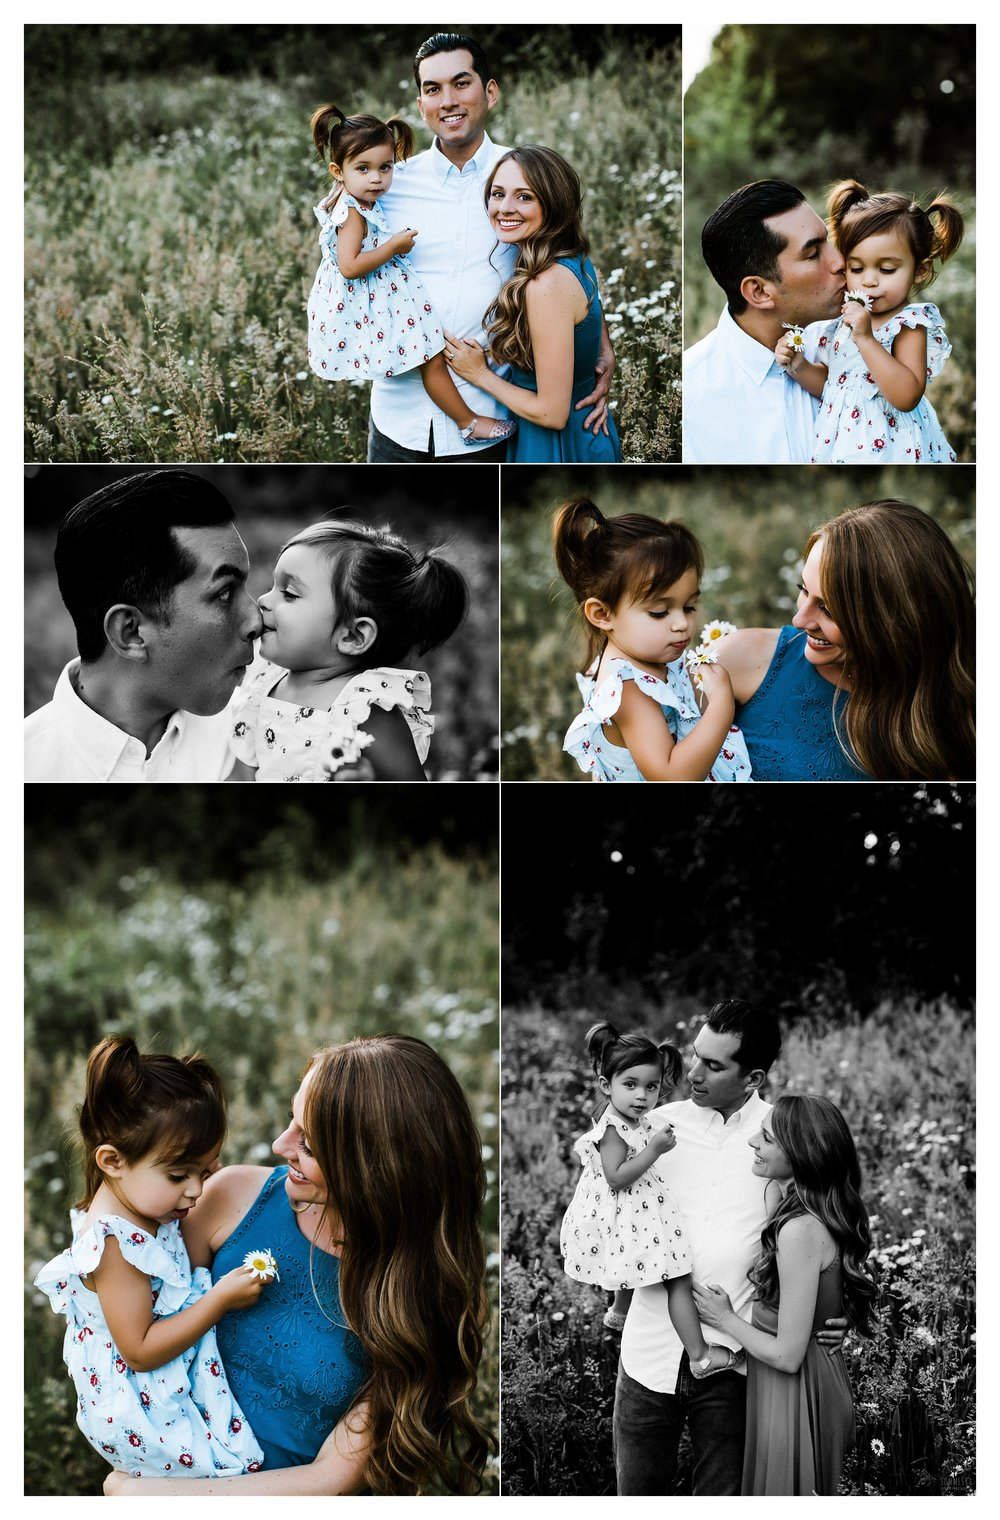 Family Photography Portland Oregon Sommessa_1197.jpg